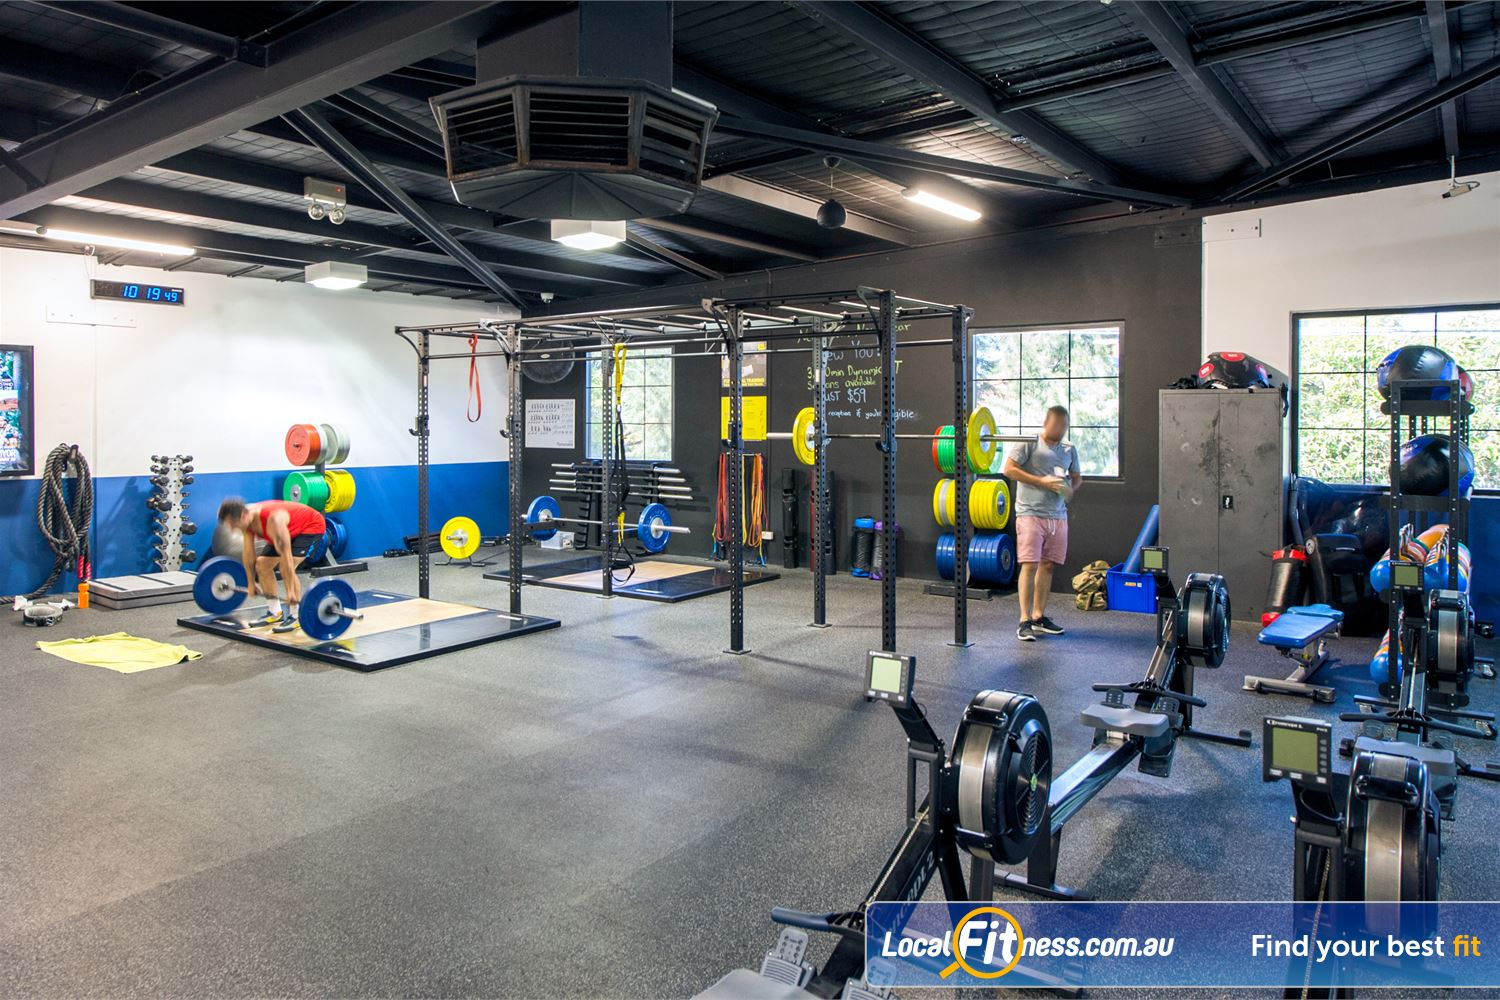 Goodlife Health Clubs Mount Lawley Fully equipped functional training area with strength matrix and lifting platforms.